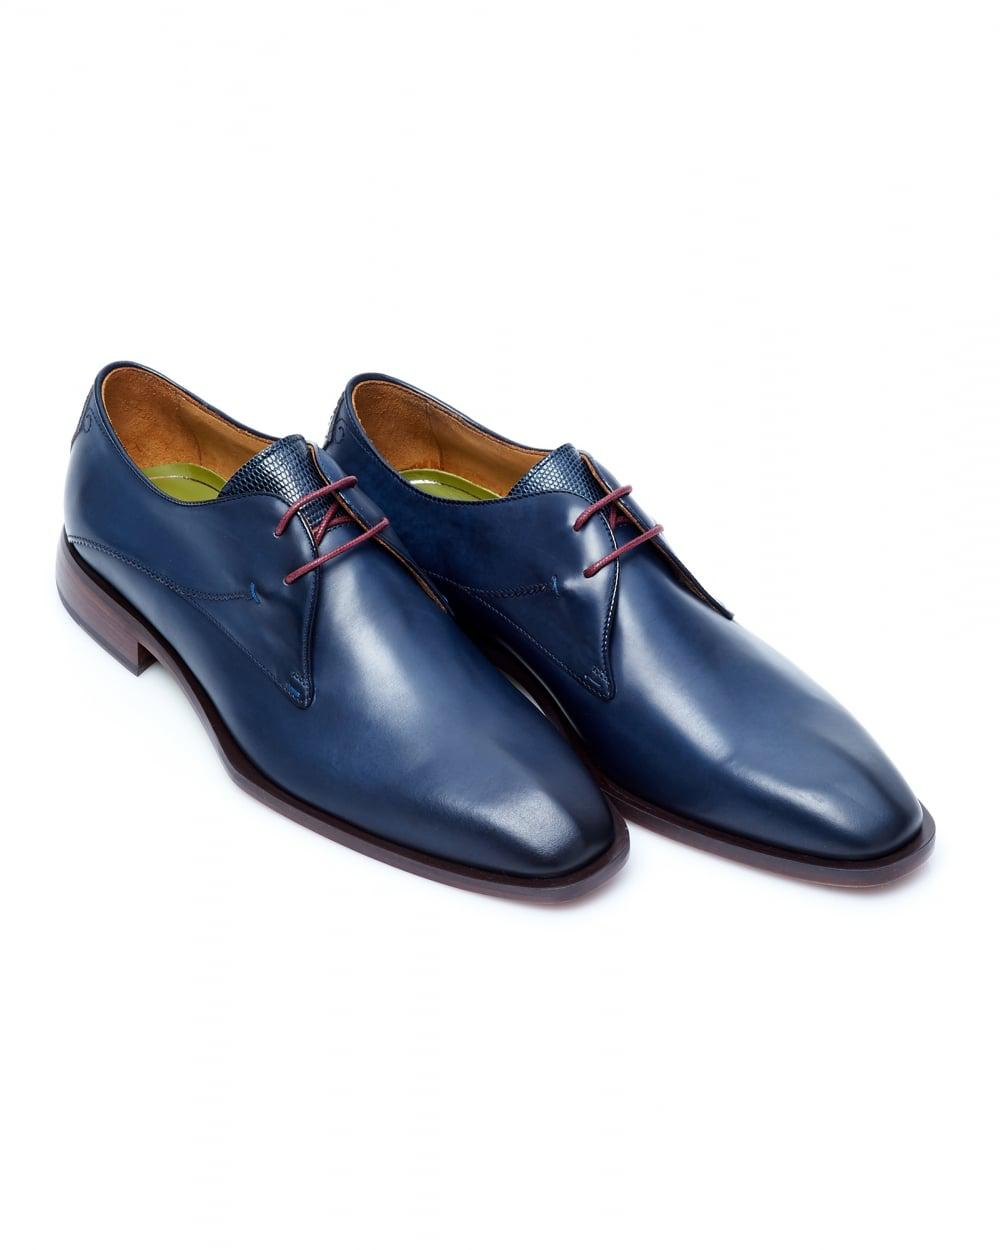 Shop Johnston & Murphy for a premium selection of men's slip-on shoes, drivers and loafers. Johnston & Murphy.